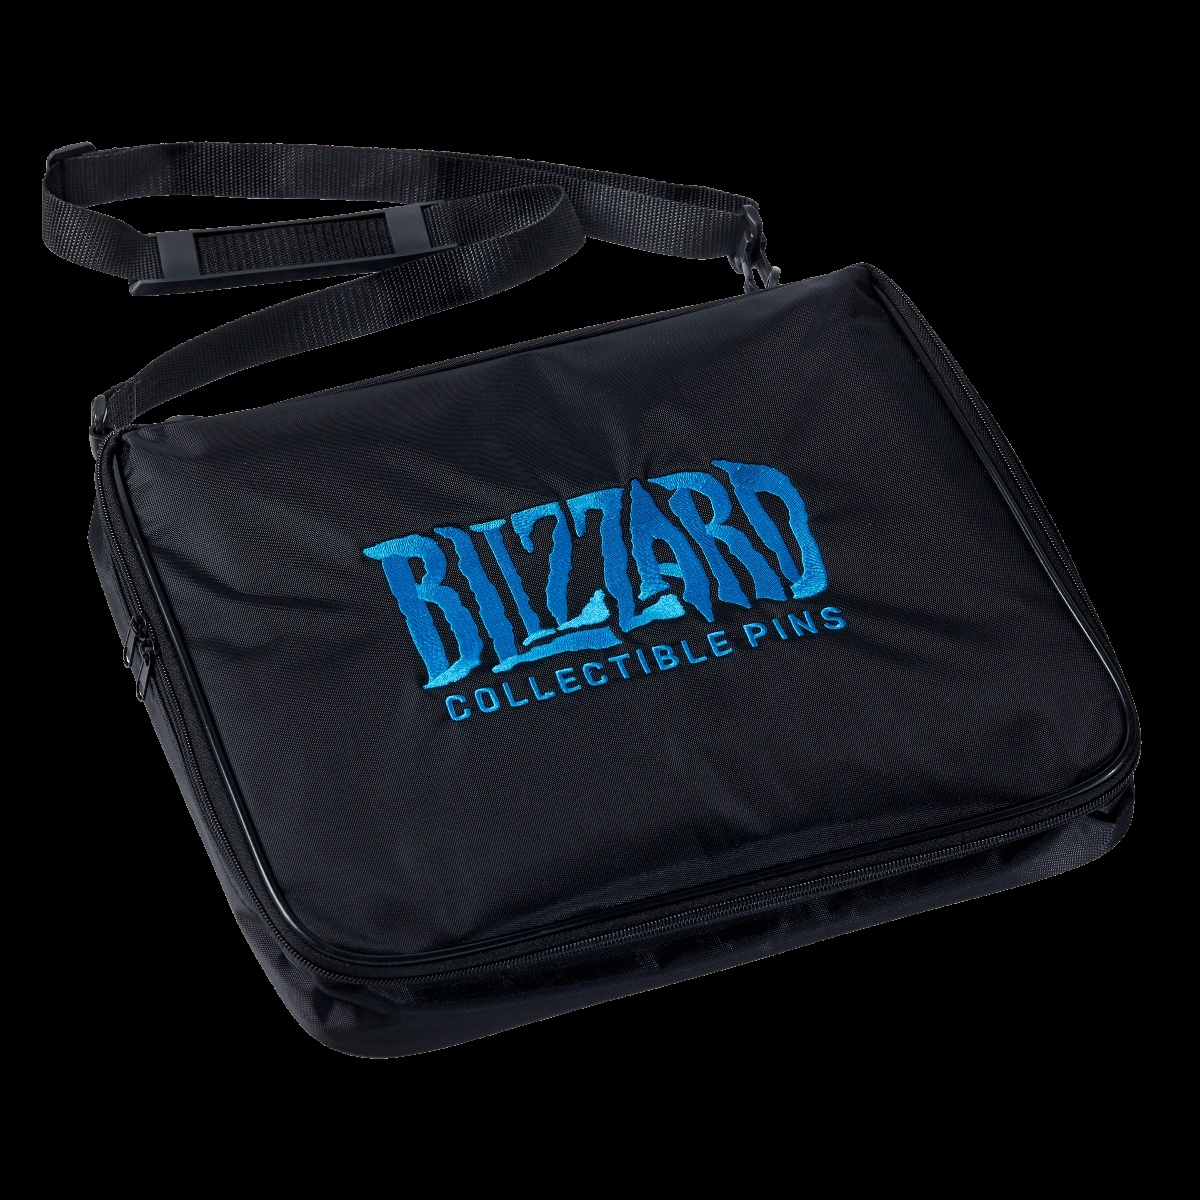 Blizzard Pin Trading Guide - Guides - Wowhead